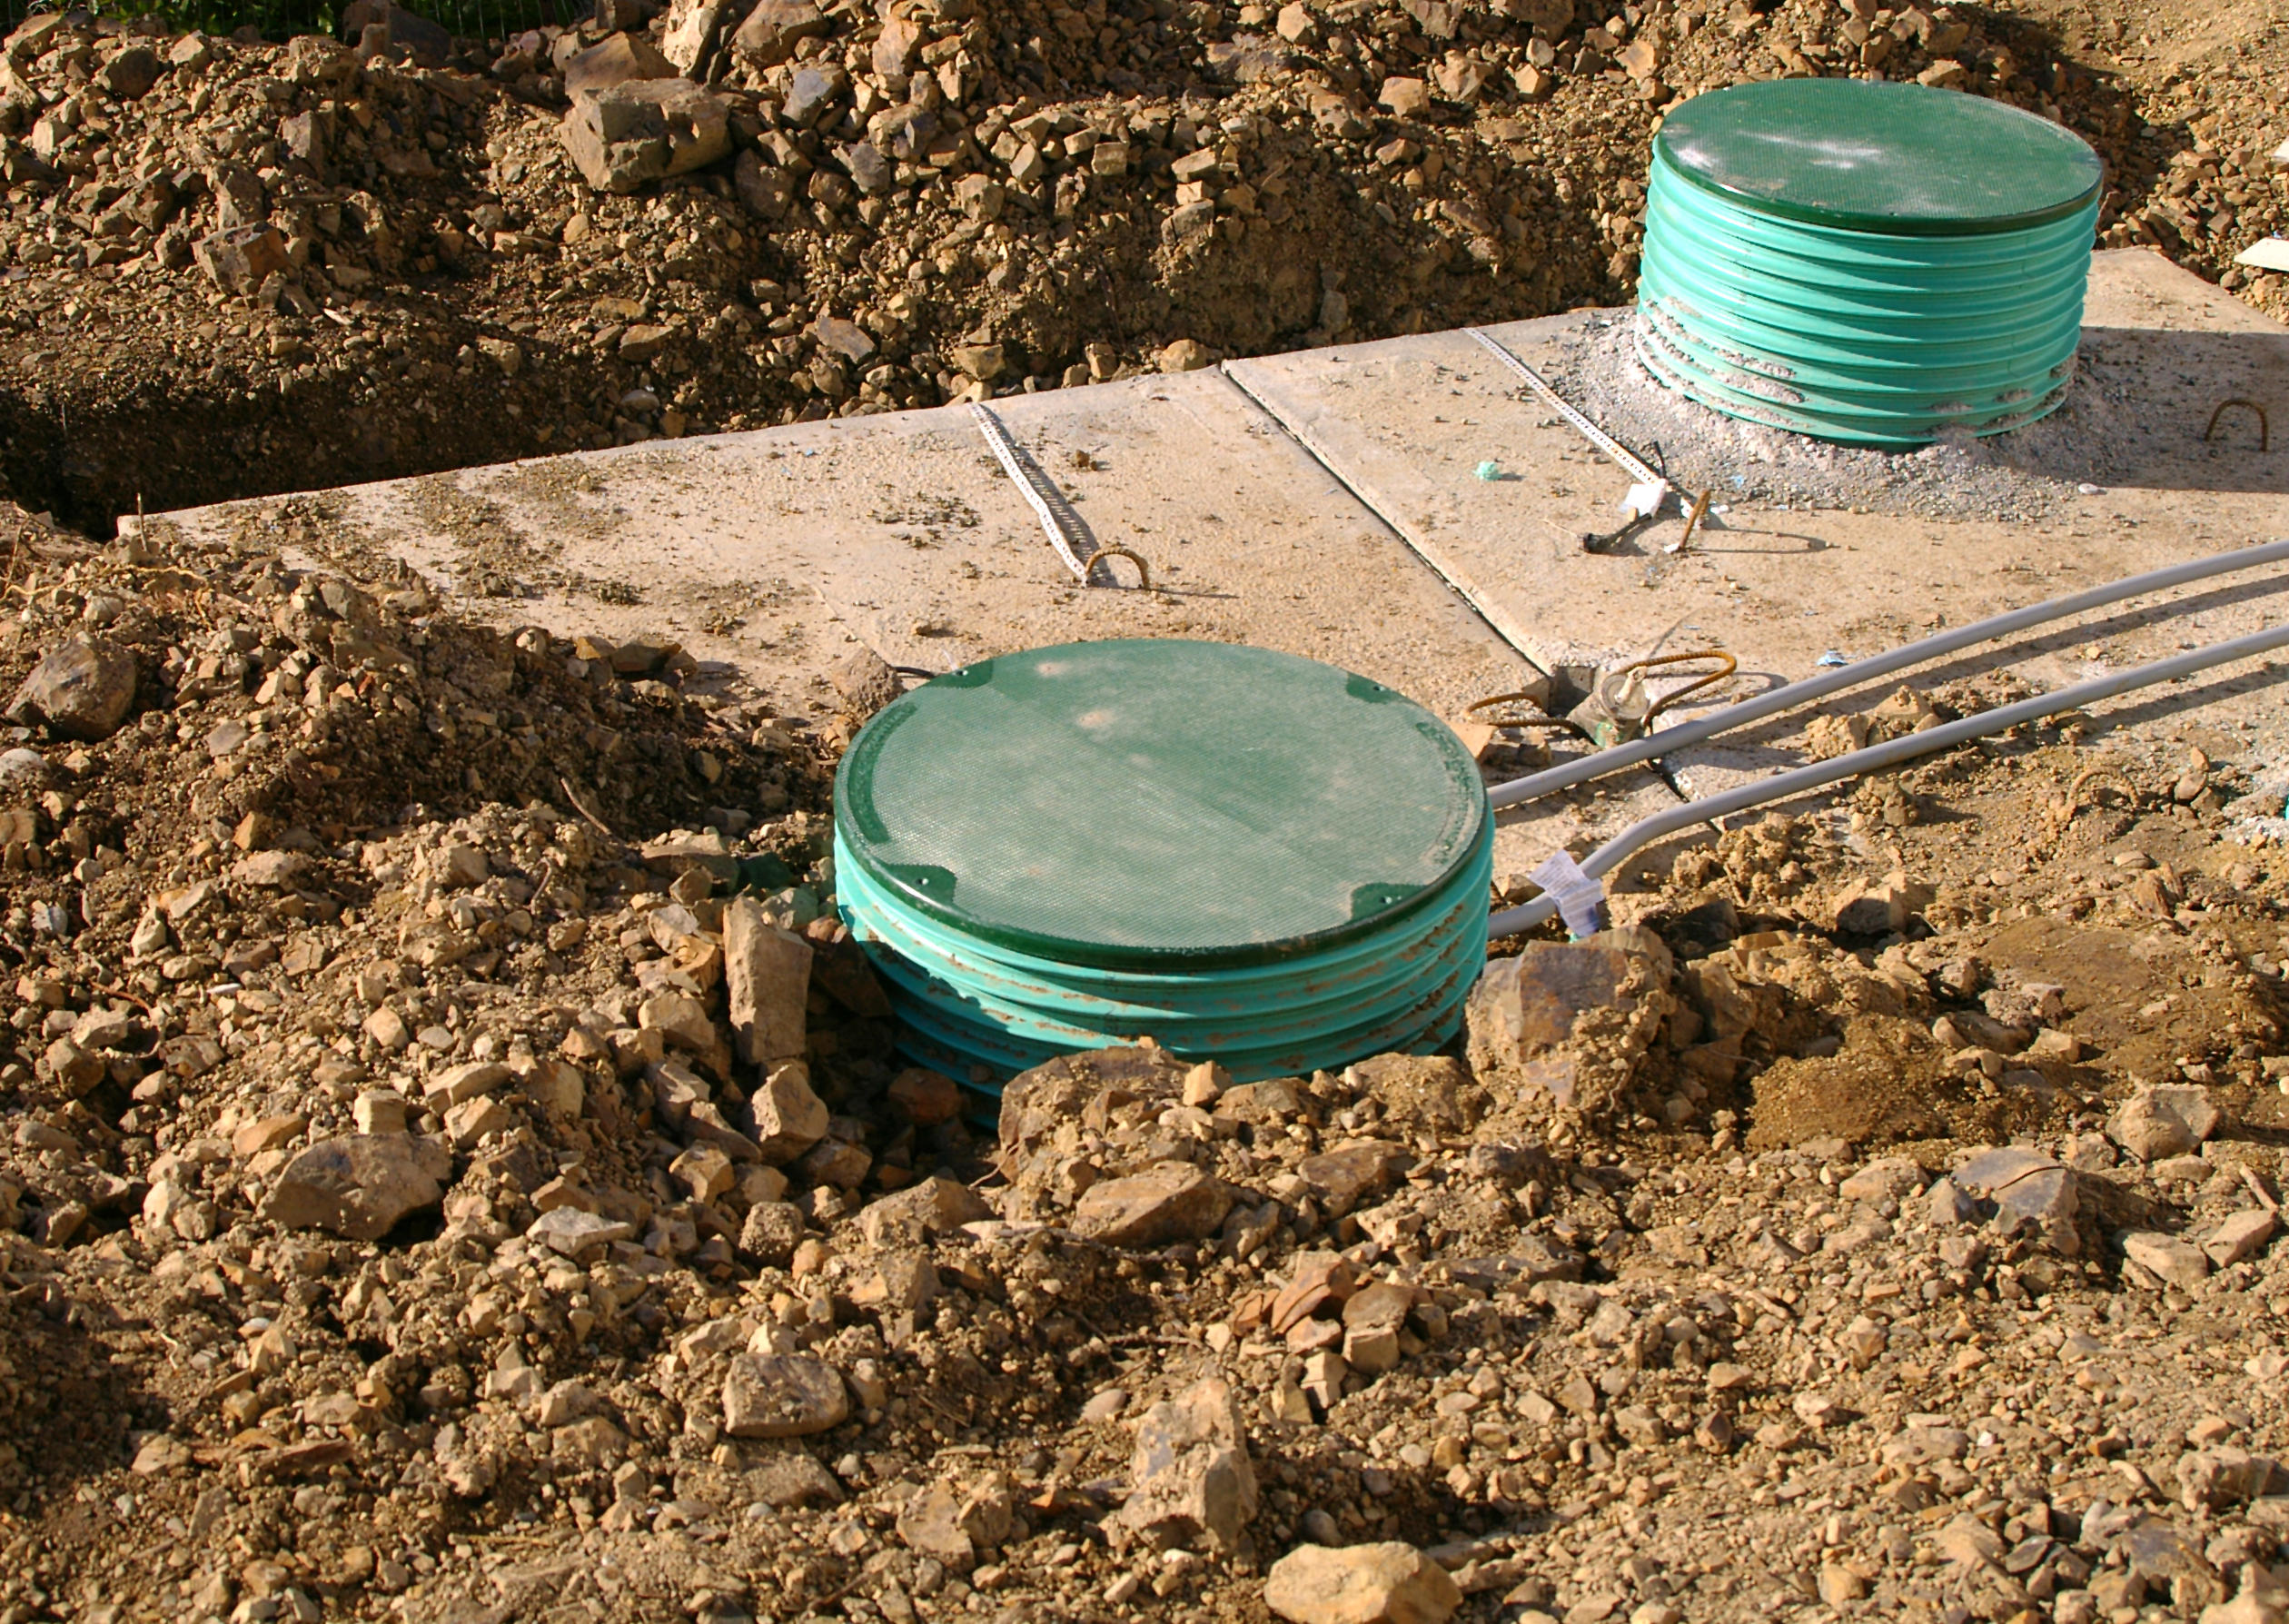 How to Find the Lid on a Septic System | Home Guides | SF Gate